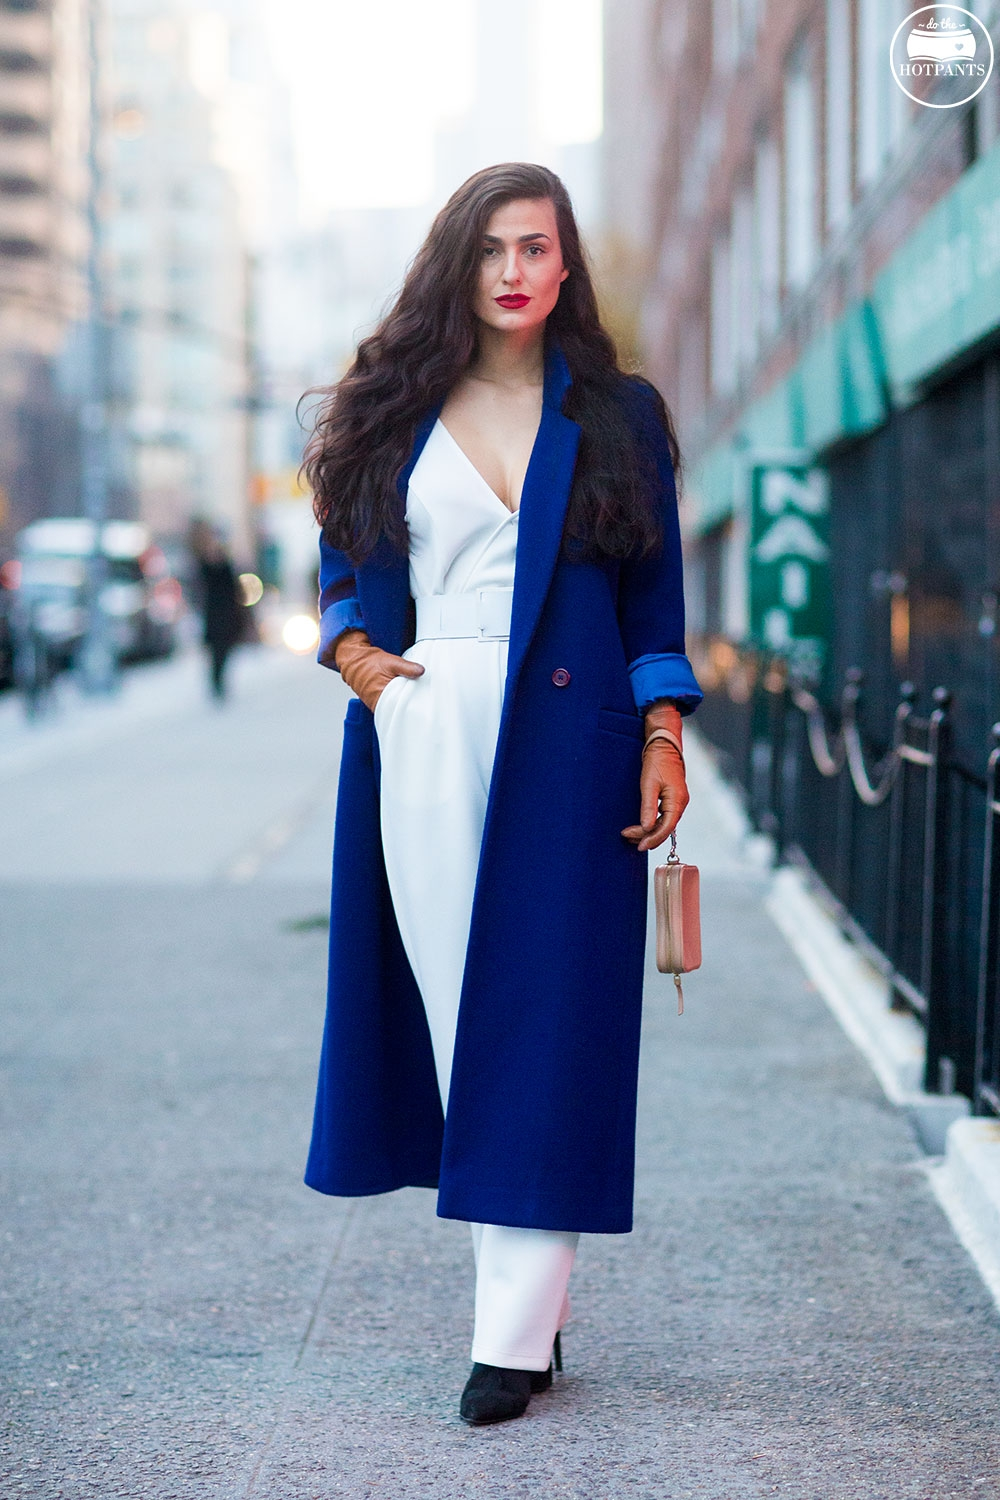 Do The Hotpants Dana Suchow White Jumpsuit Navu Blue Peacoat Trench Coat Jacket Red Lipstick Long Hair Woman MJJ_9952